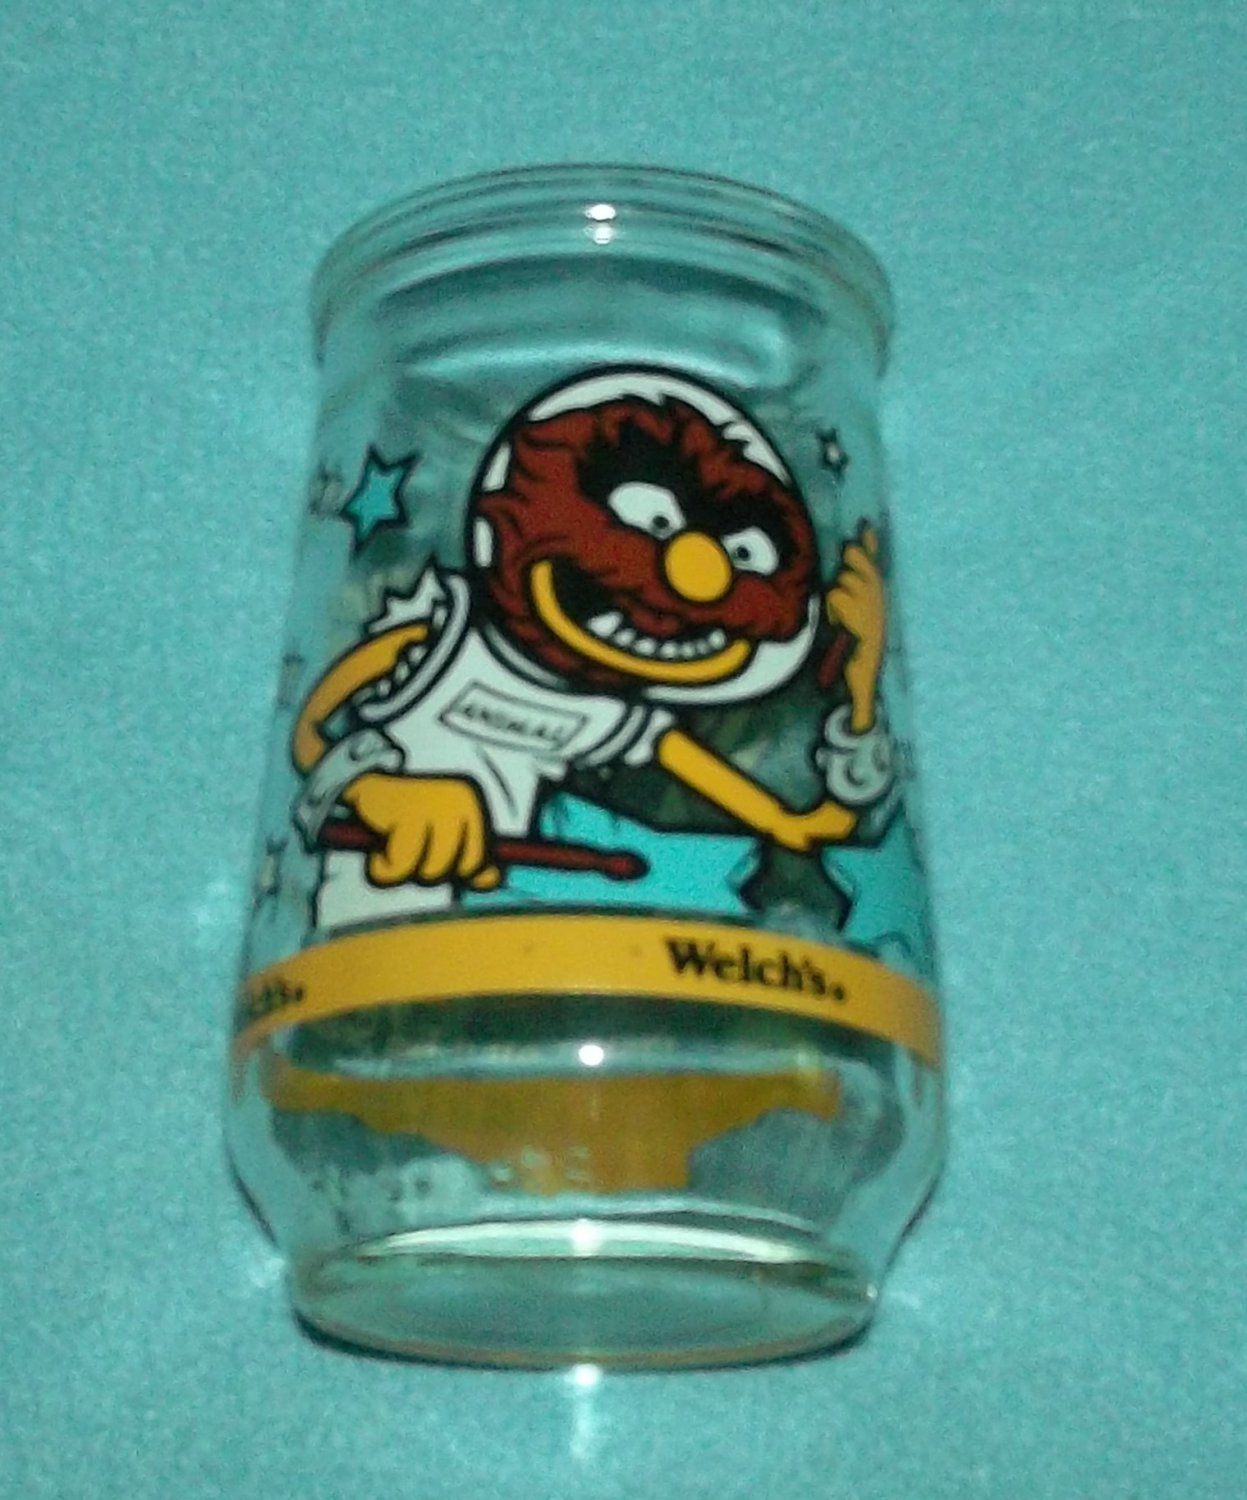 WELCH'S JAM JELLY JUICE COLLECTOR GLASS ~MUPPETS IN SPACE~ANIMAL JAMS WITH THE STARS #6